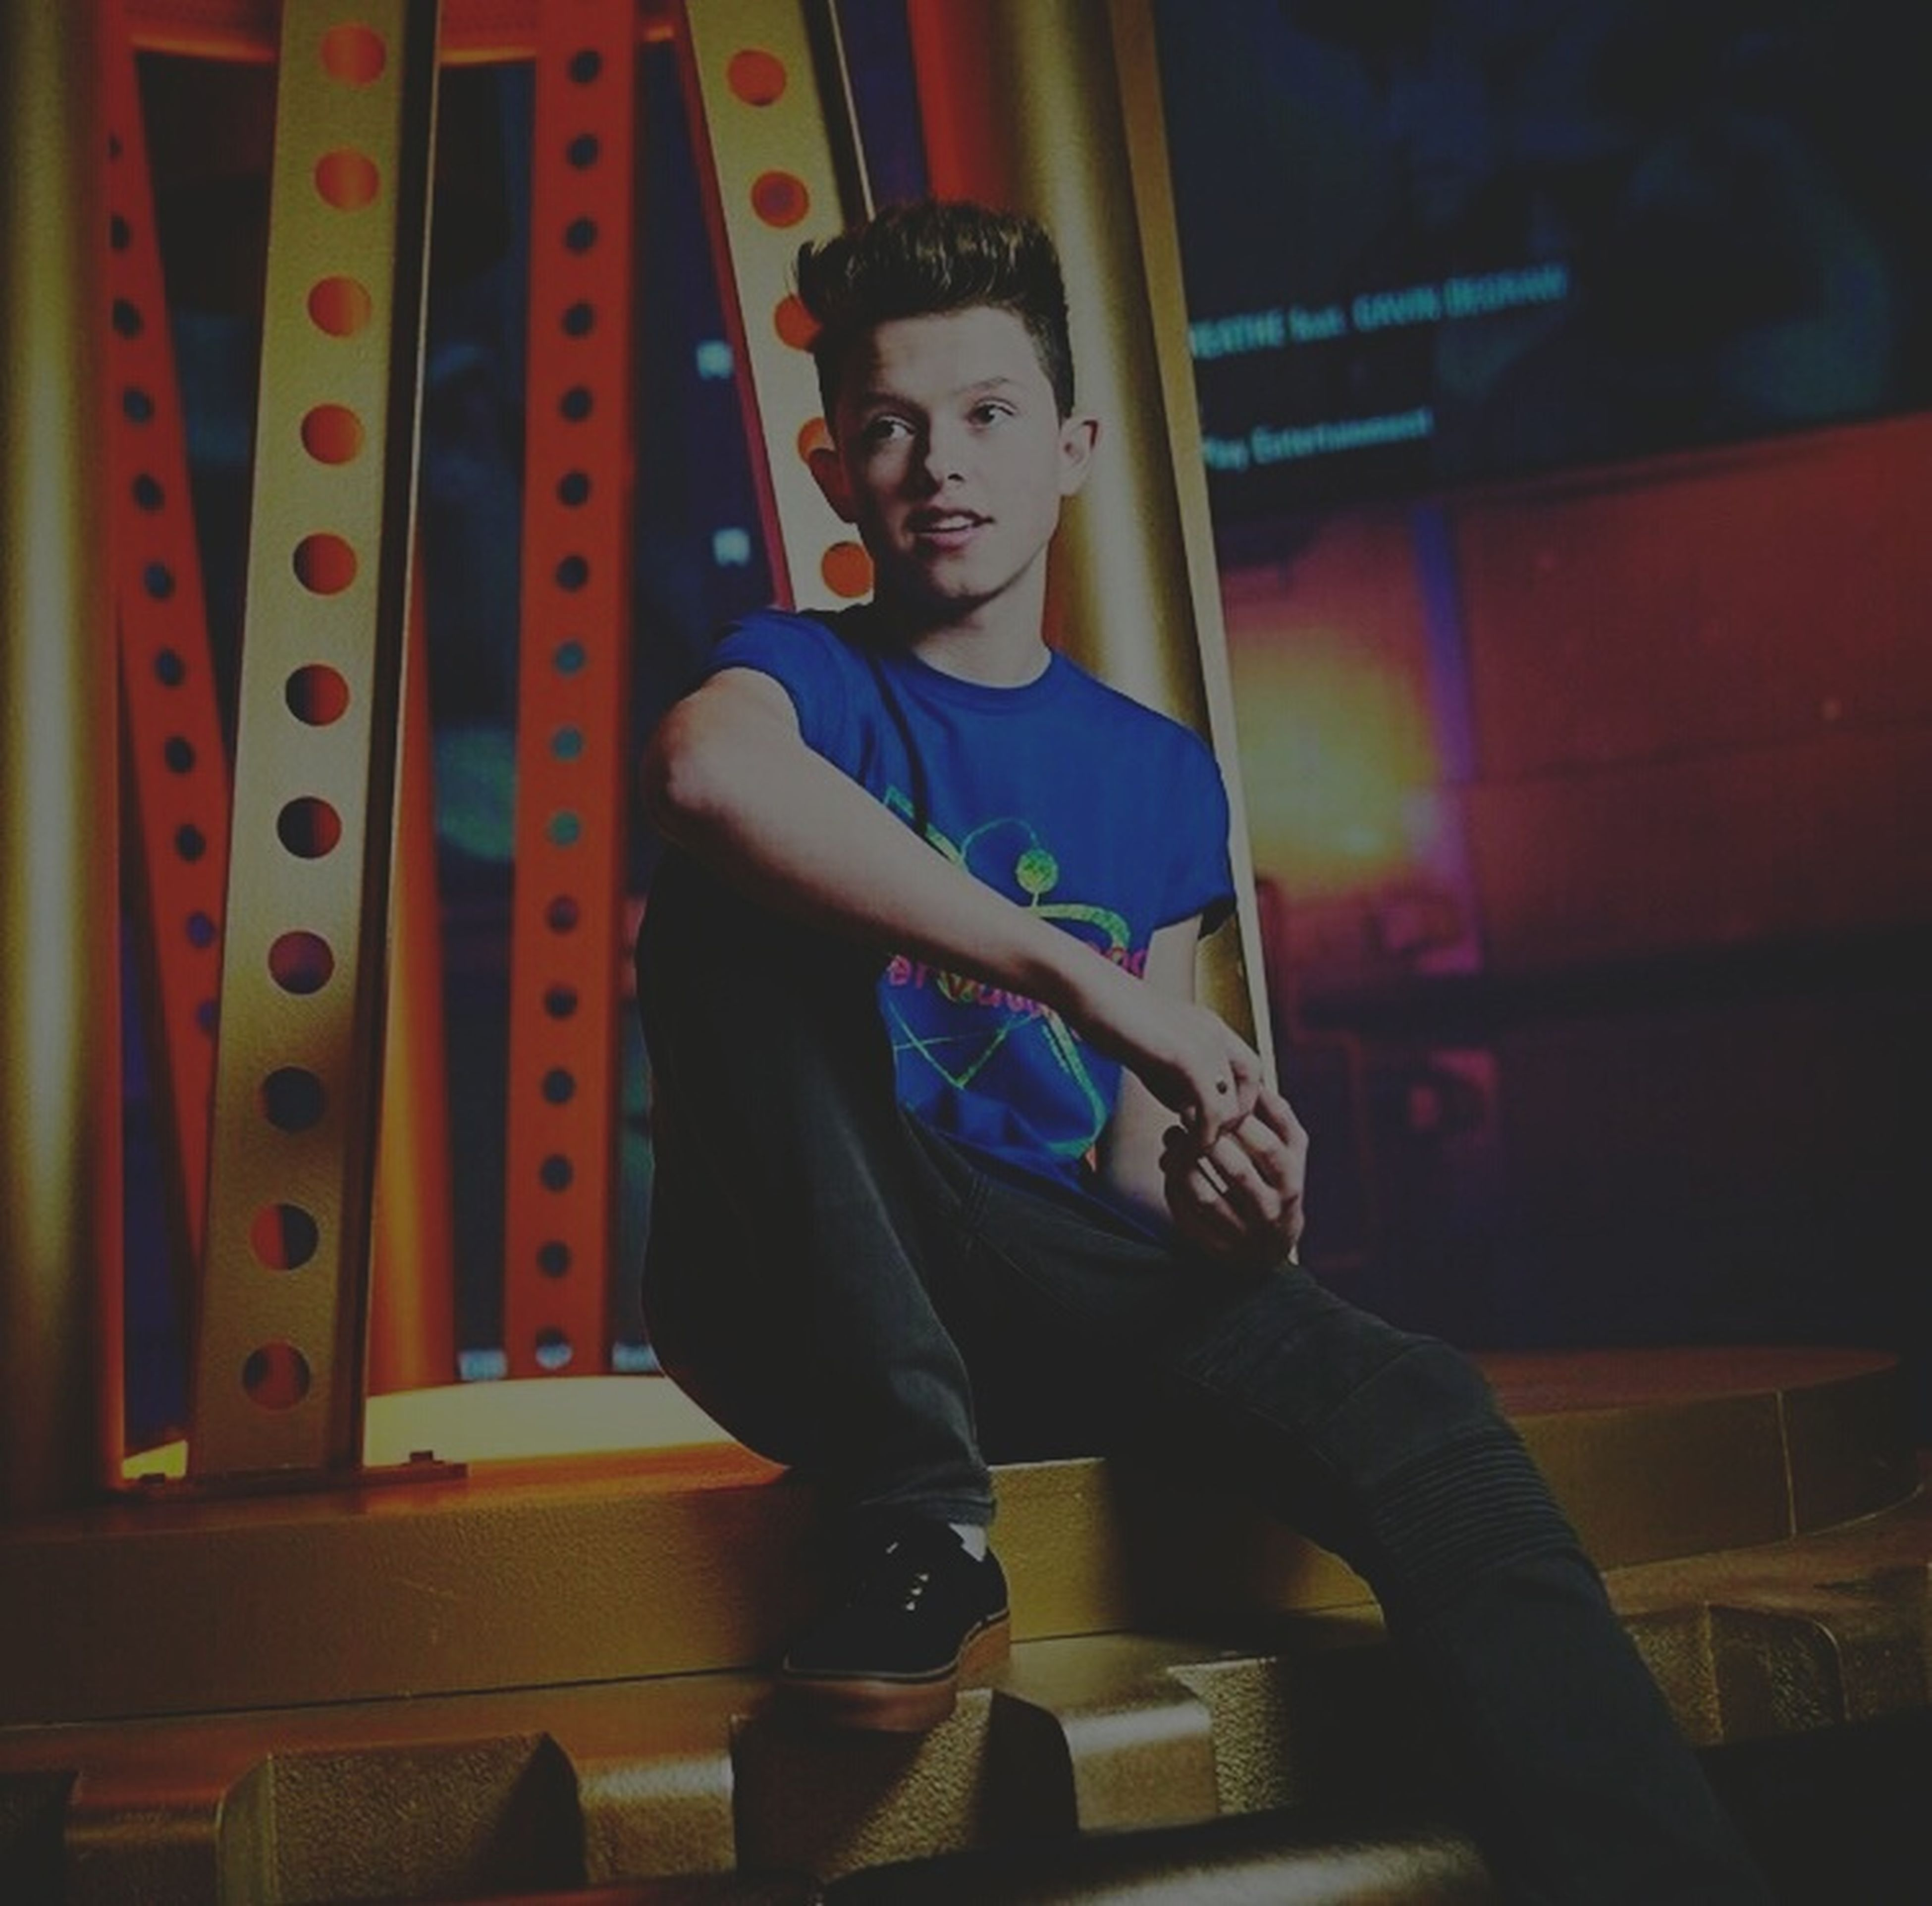 music, young adult, teenager, lifestyles, one person, arts culture and entertainment, portrait, people, indoors, musician, night, adult, adults only, one man only, snooker